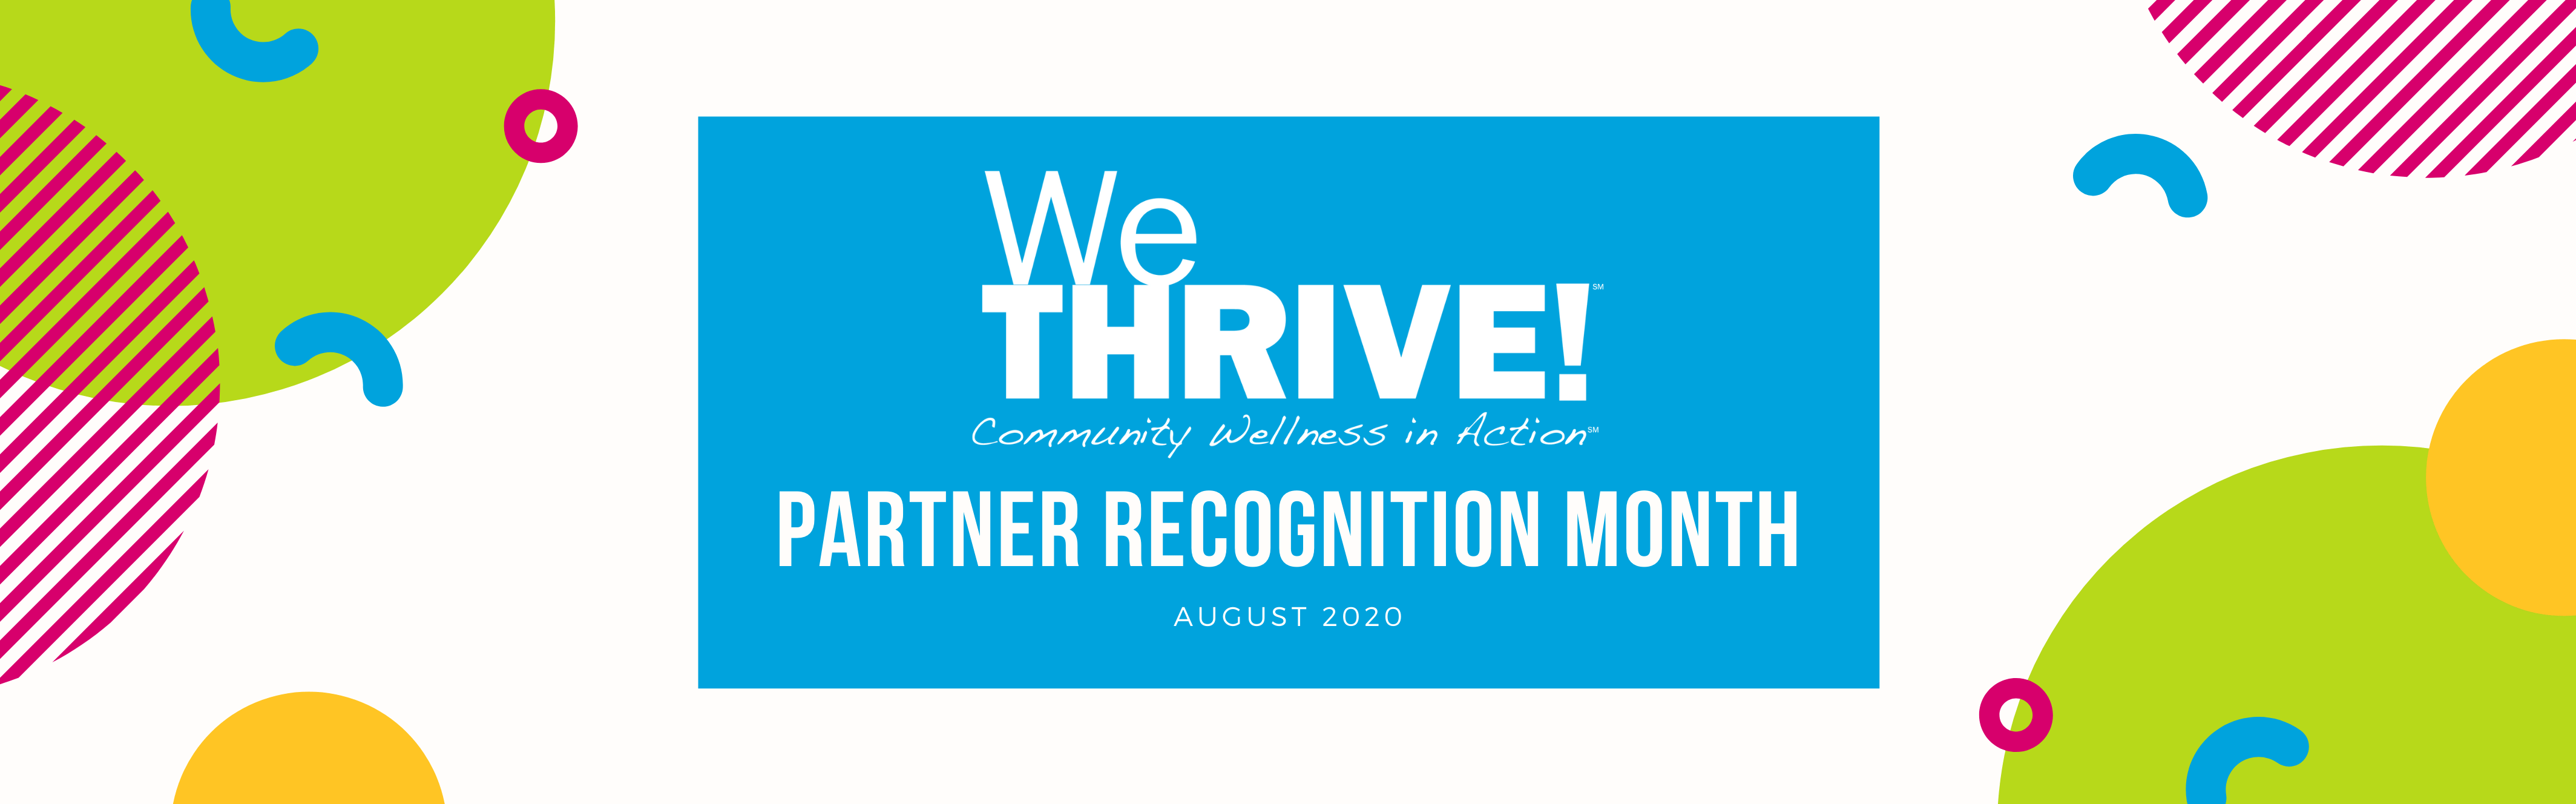 Reads We Thrive Partner Recogniition Month August 2020